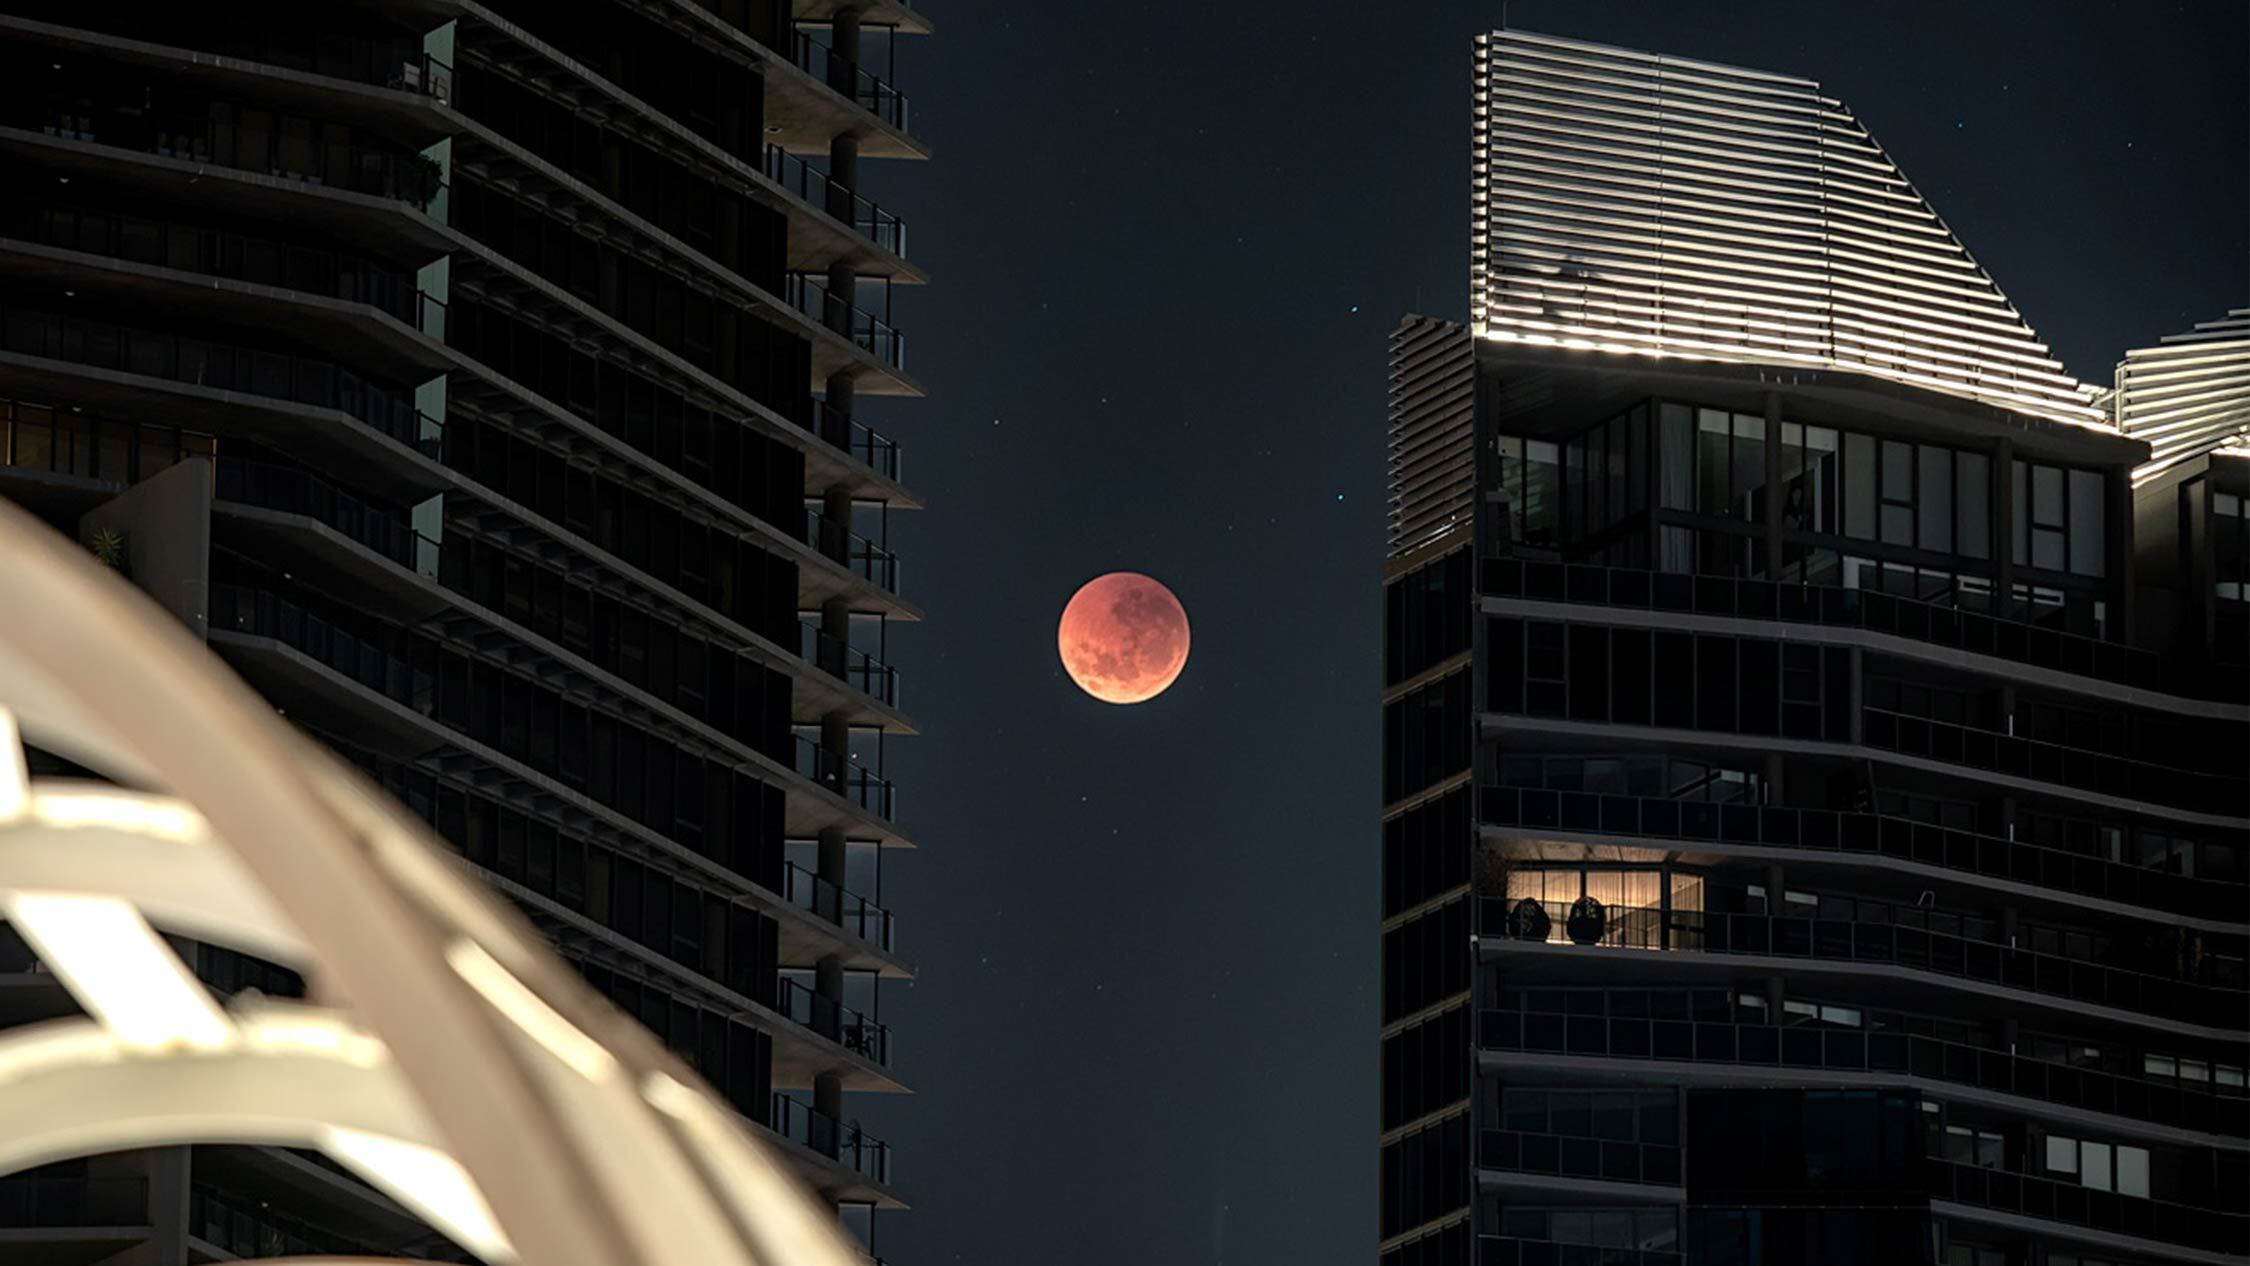 A pink super moon will be visible across Australia this April